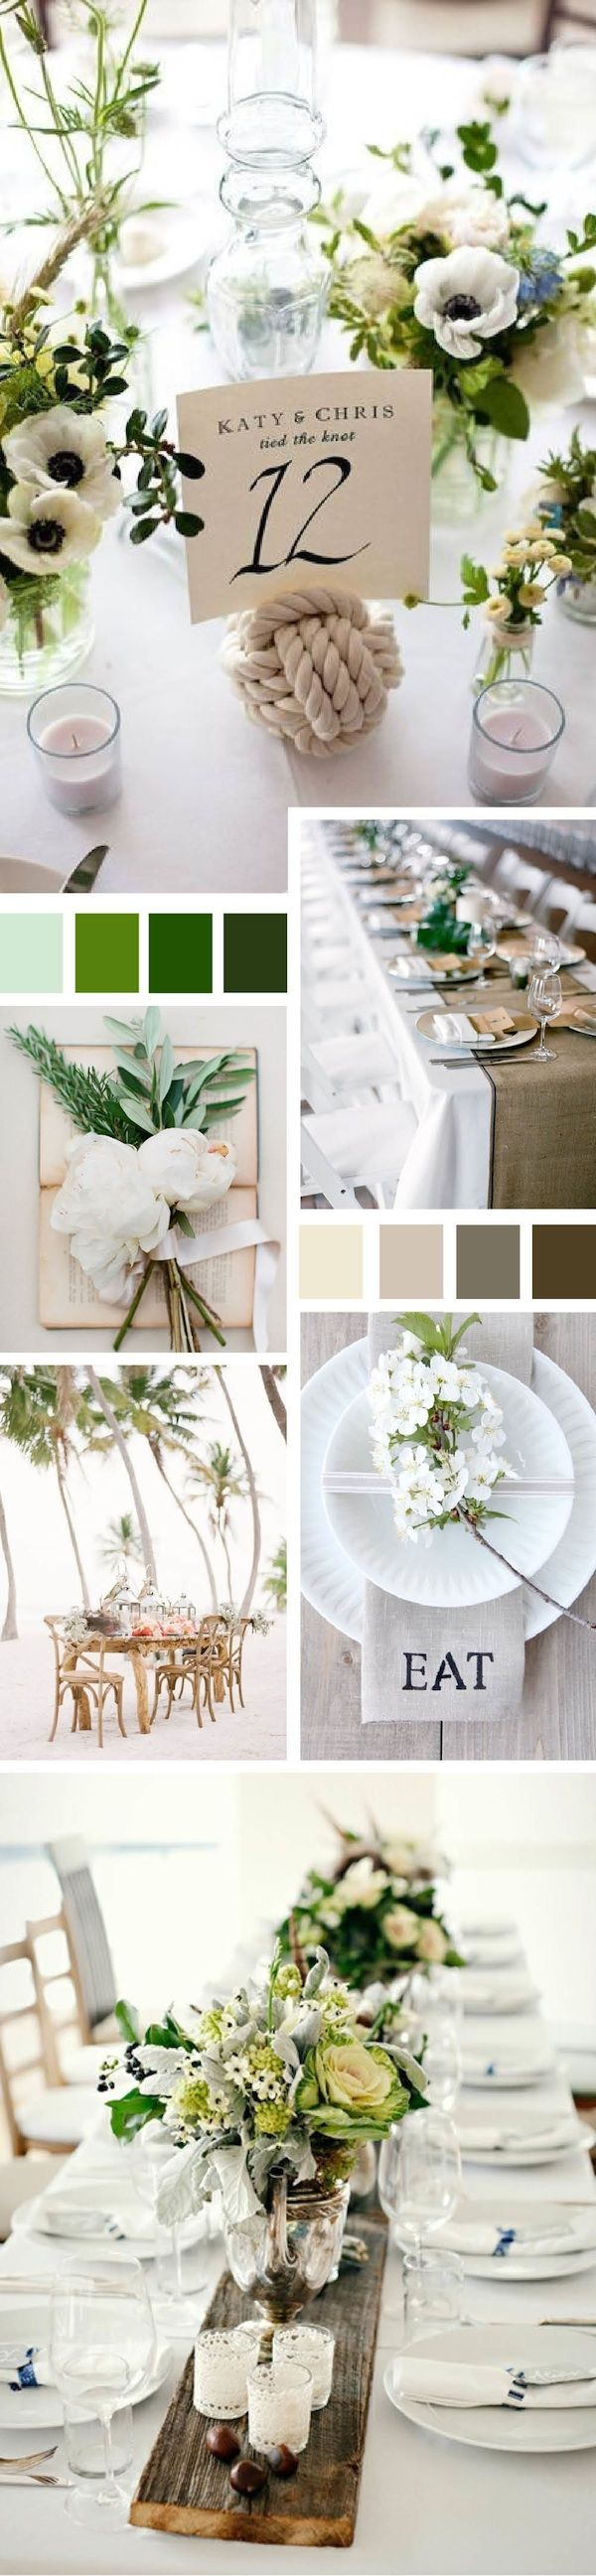 Beach table-setting